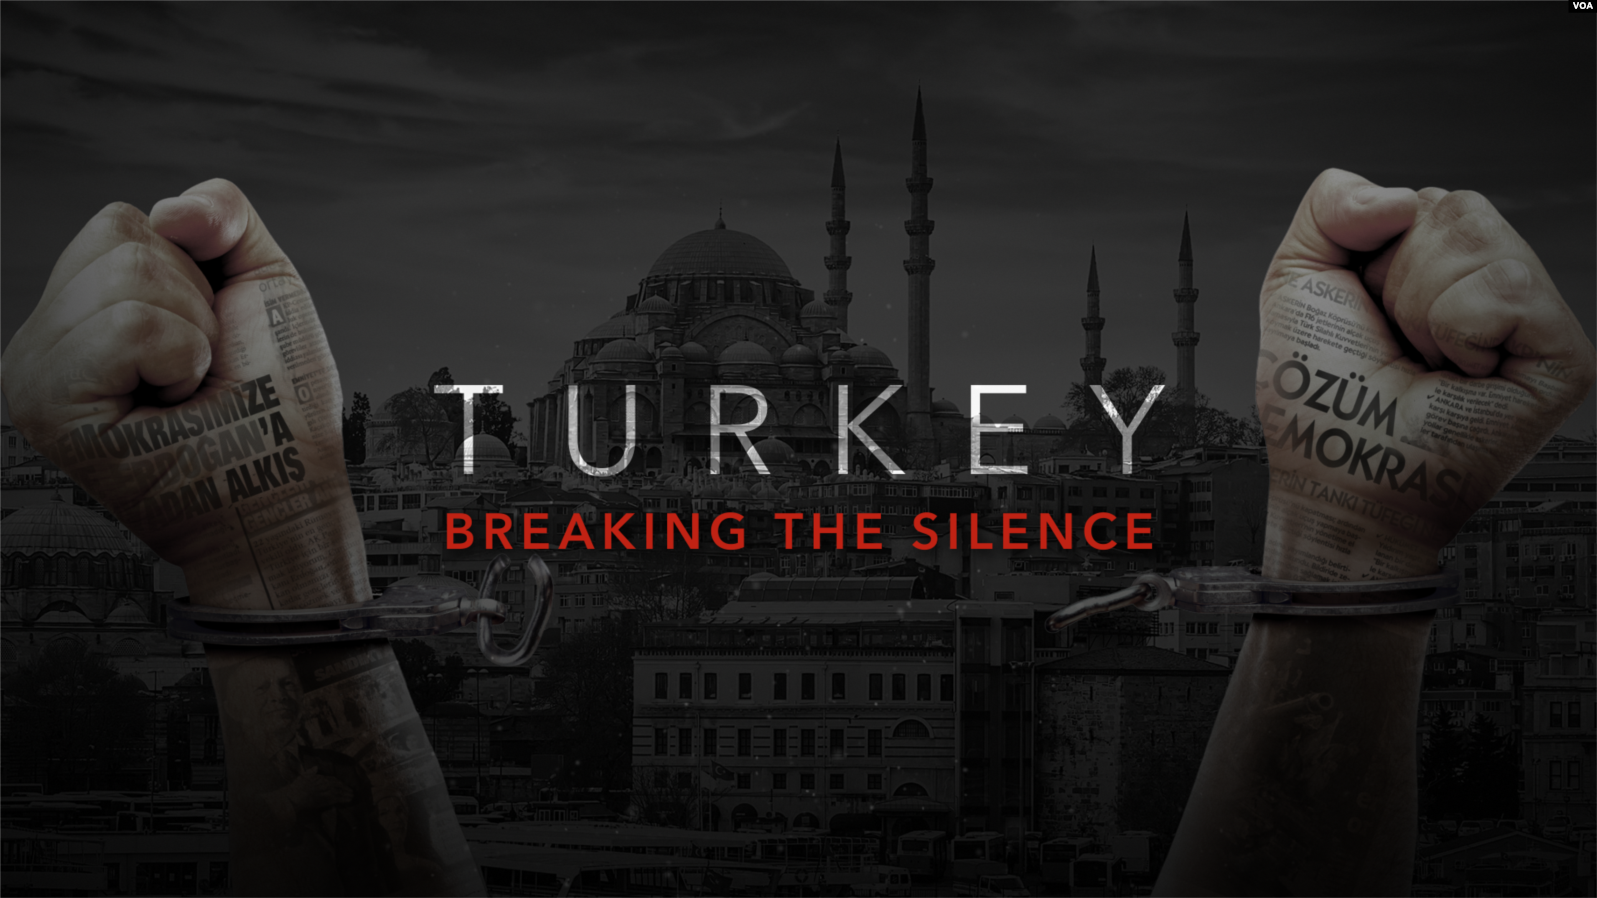 Loss of press freedoms in Turkey subject of new VOA documentary